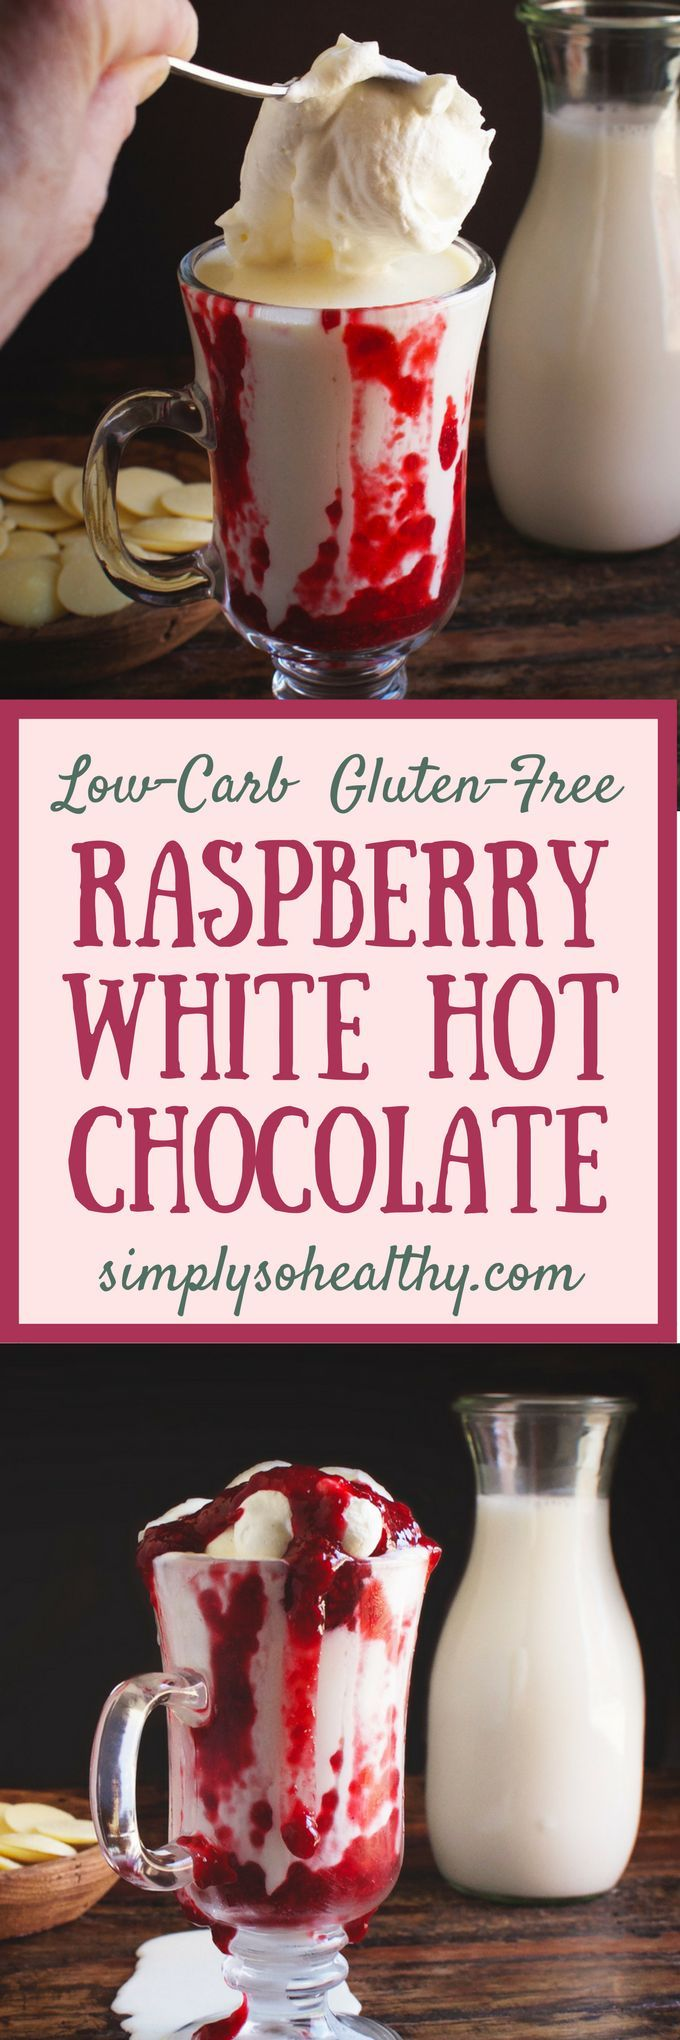 657 Best Low Carb Snack And Appetizer Recipes Images On Swisse Raspberry Extract Ketones 60 Vege Capsules White Hot Chocolate